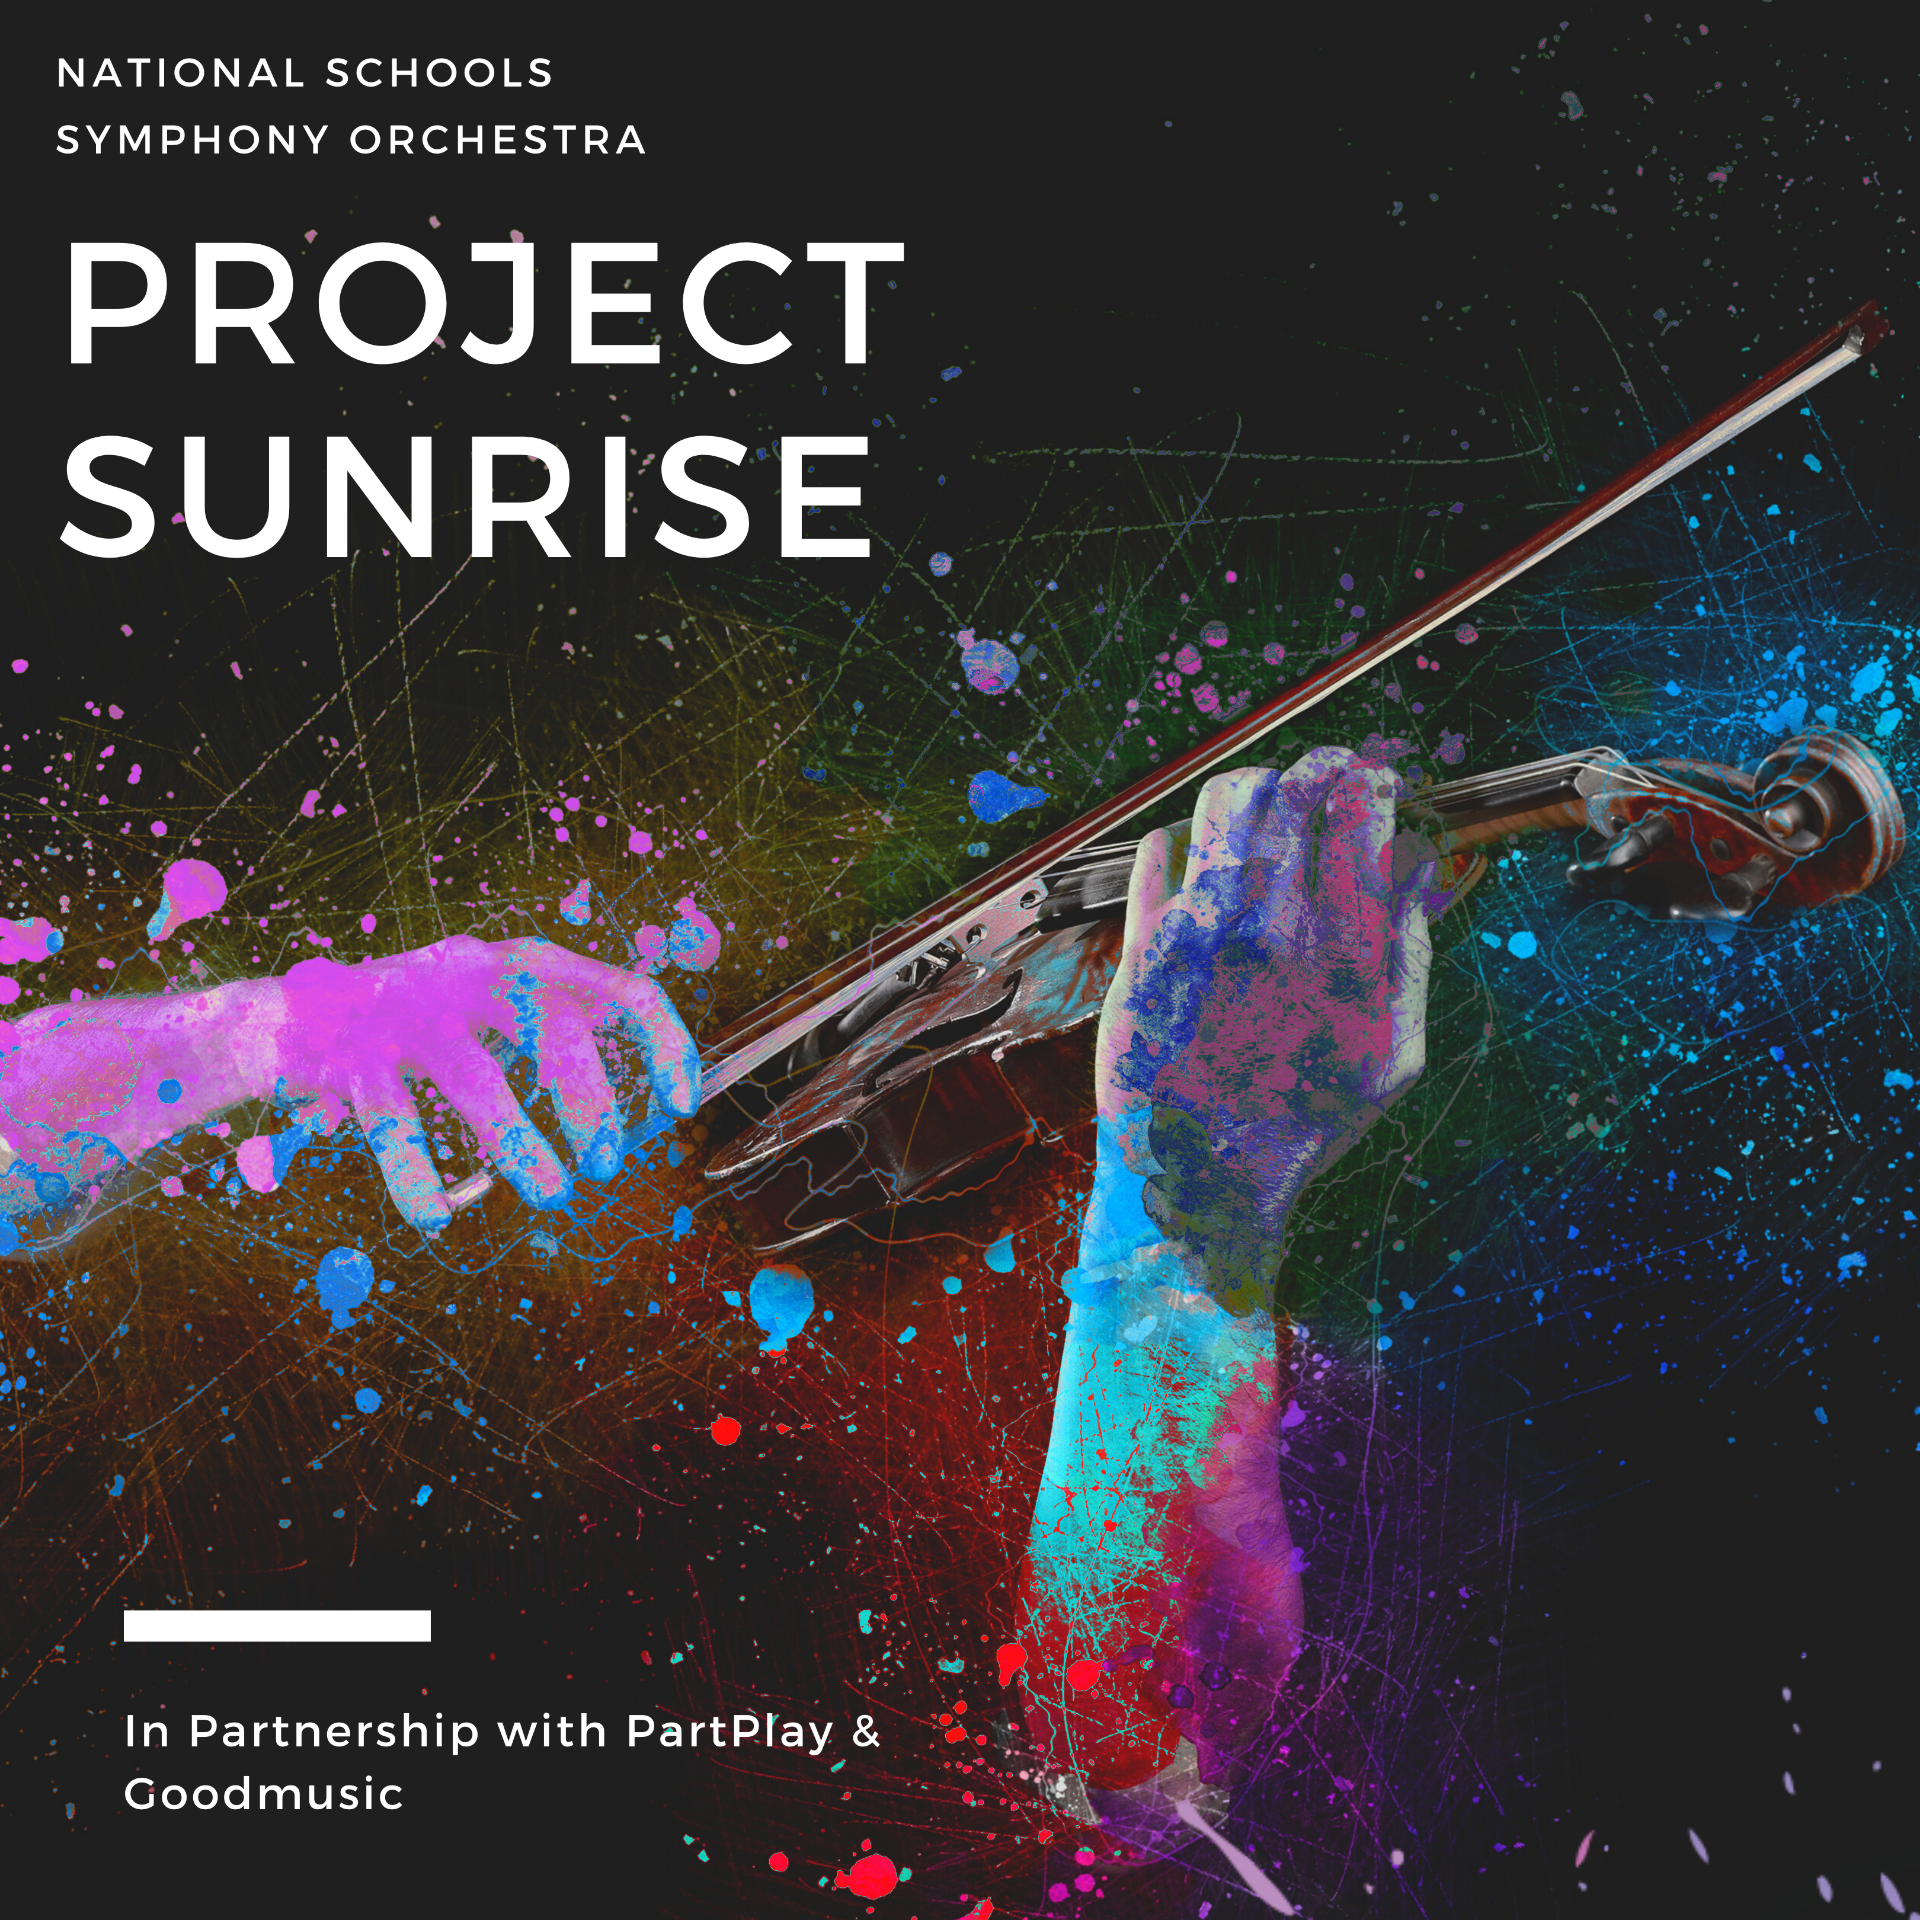 Project Sunrise virtual performance